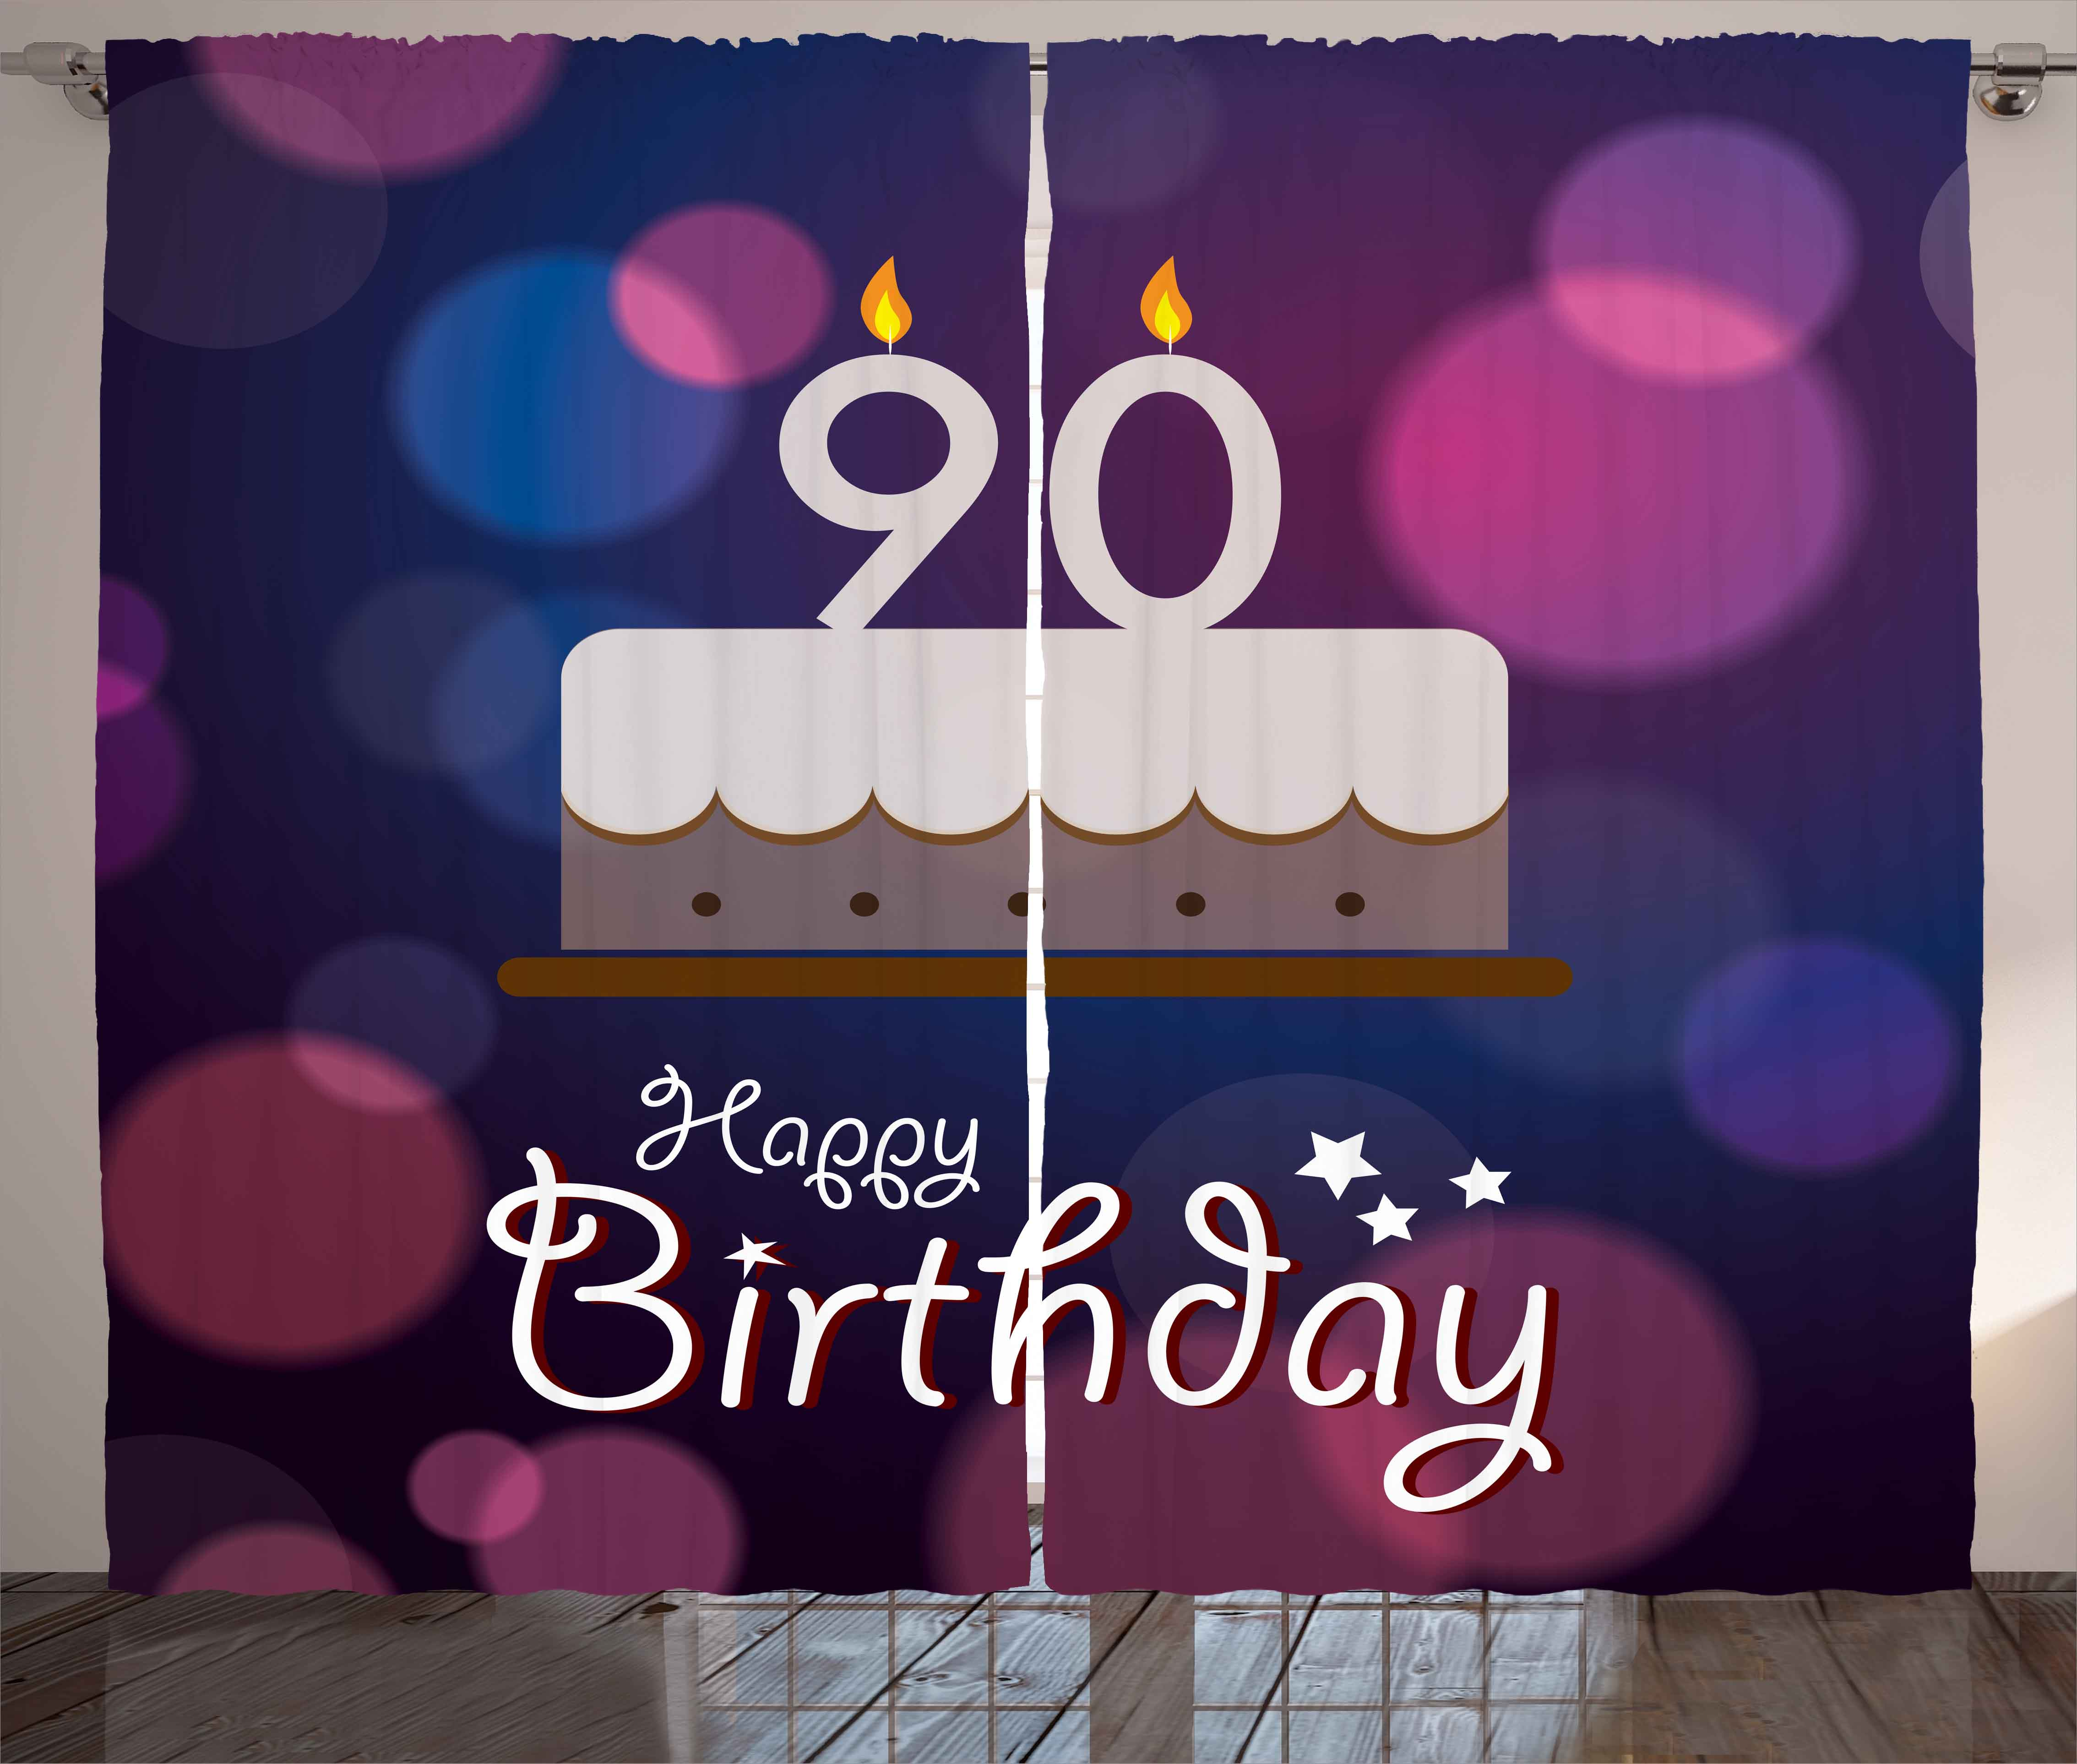 90th Birthday Curtains 2 Panels Set Dreamy Layout with Color Spots